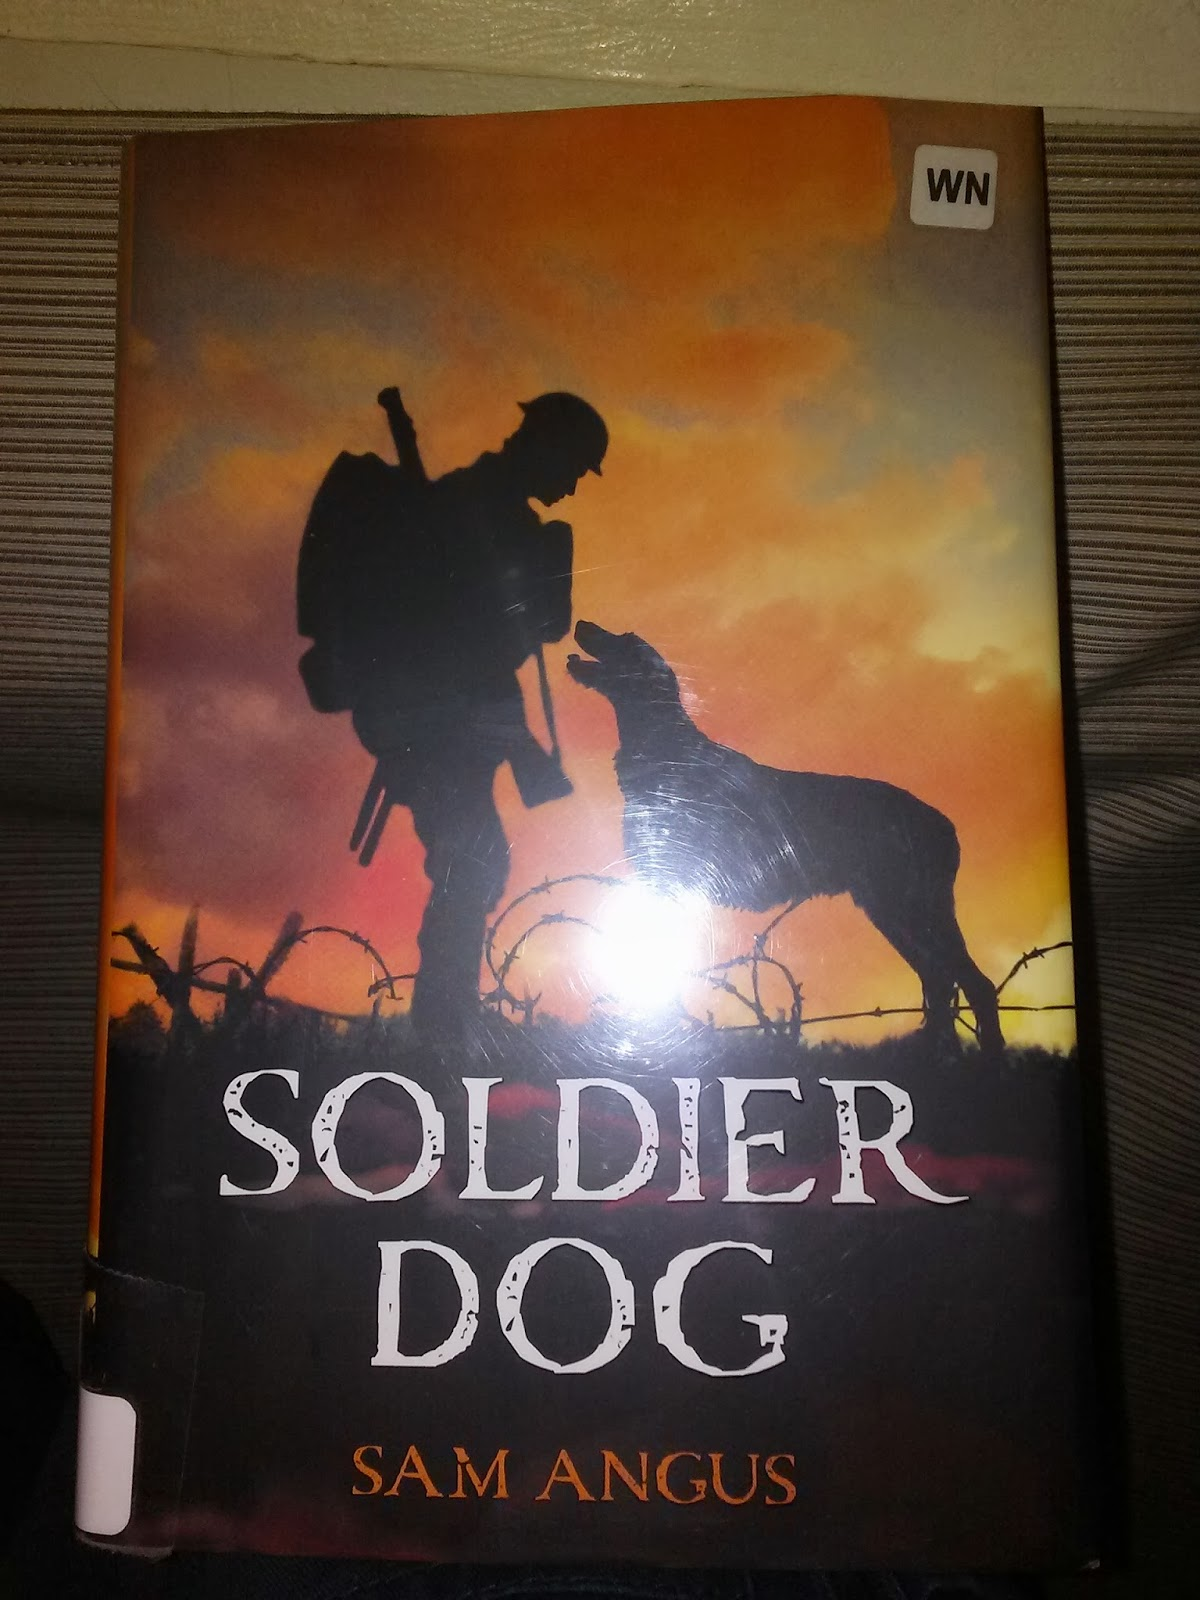 Soldier dog ebook best deal gallery free ebooks and more searching for the perfect book soldier dog by sam angus soldier dog is about stanley a fandeluxe Image collections